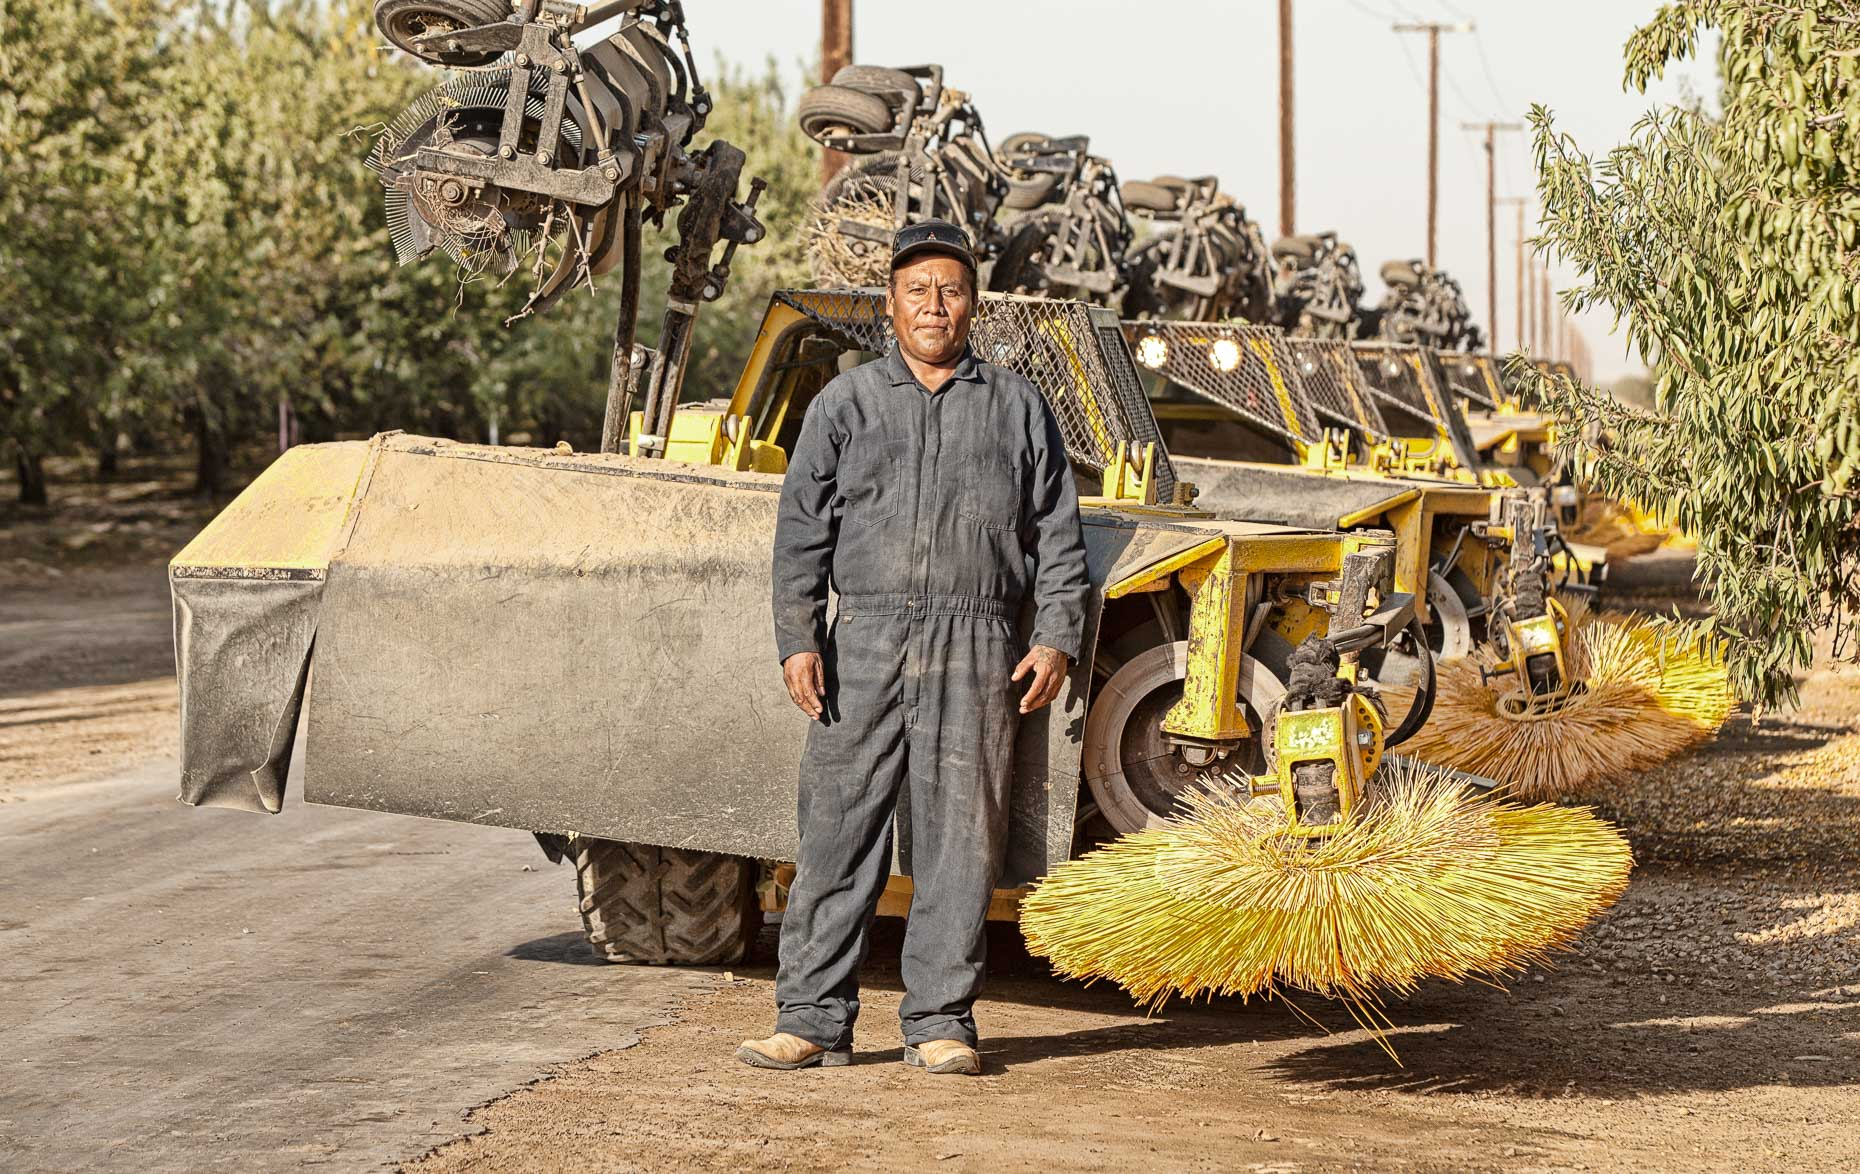 Portrait of farm orchard worker standing in front of sweeper machine in almond orchard near Lost Hills, California by David Zaitz